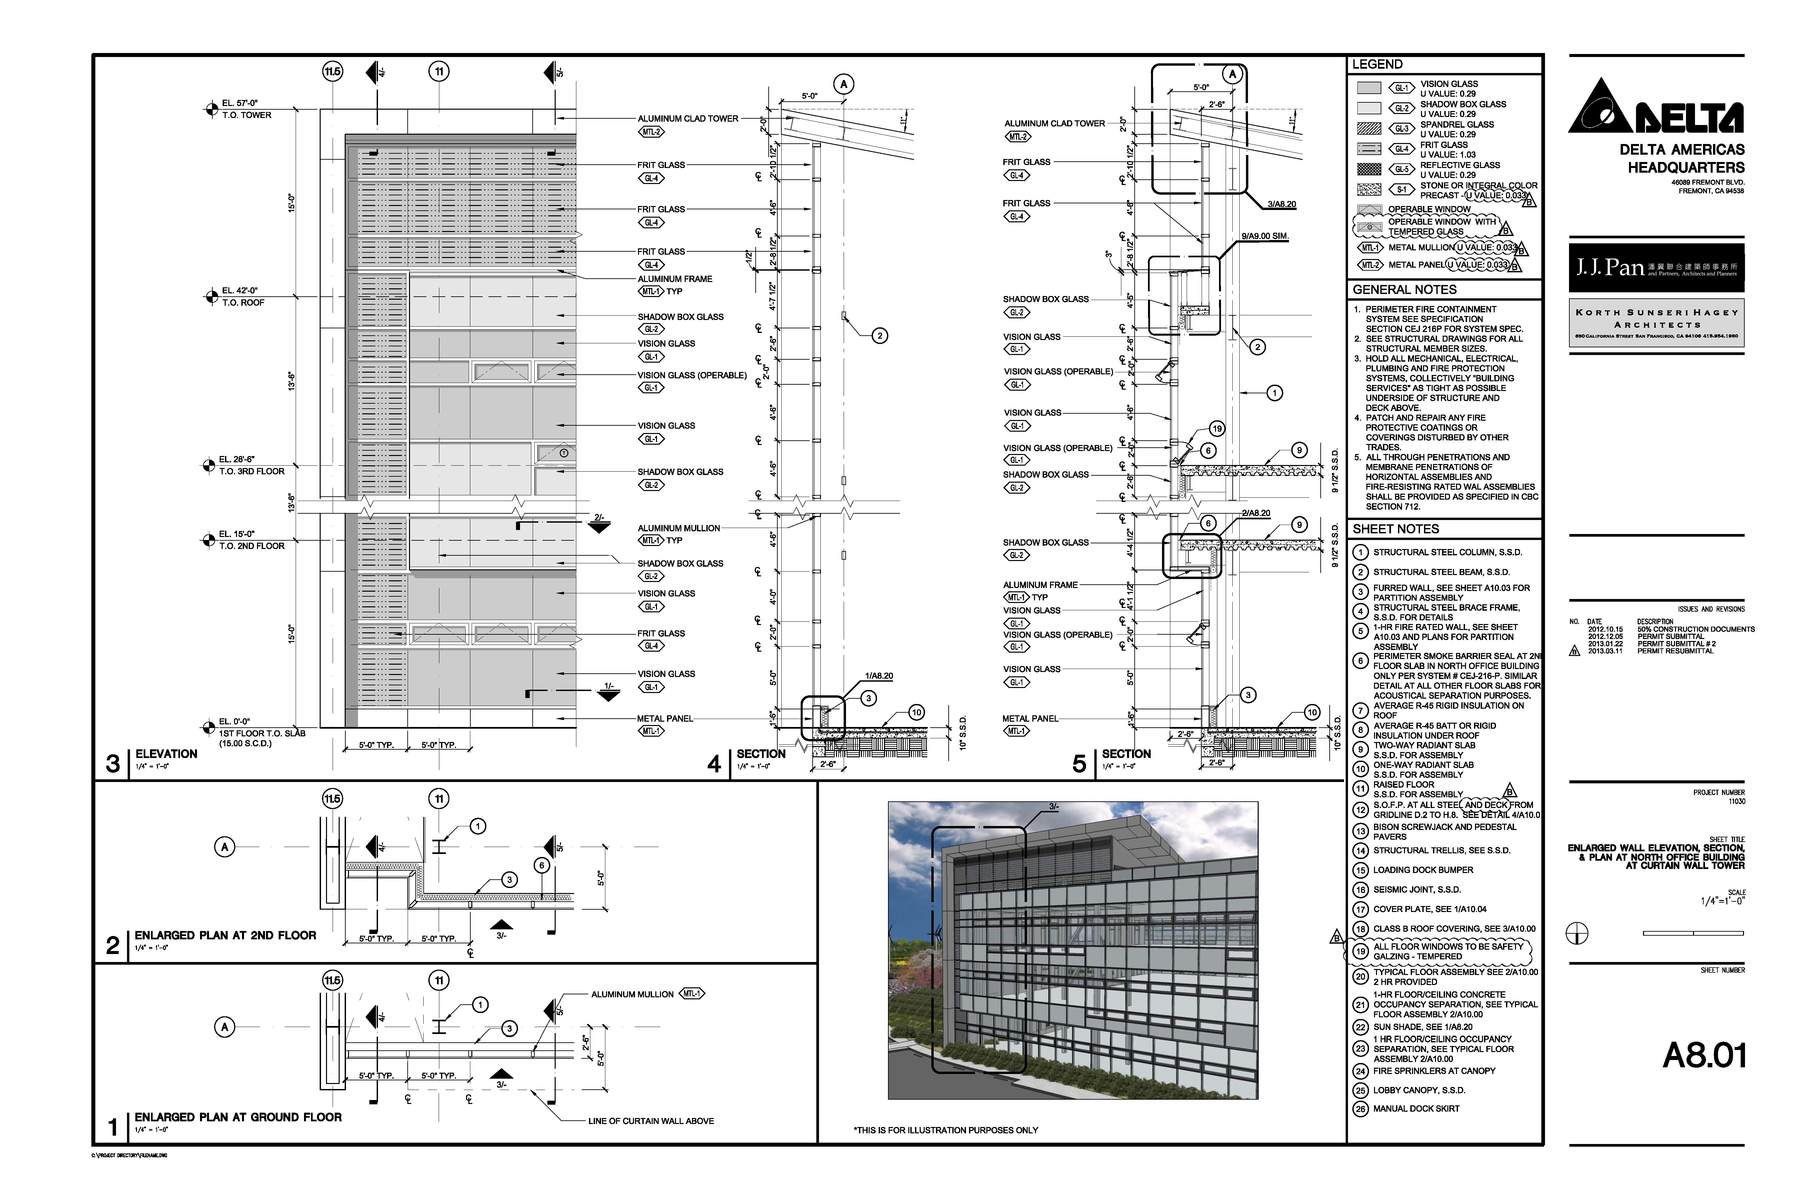 Construction Documents Enlarged Plan, Elevation, and Section